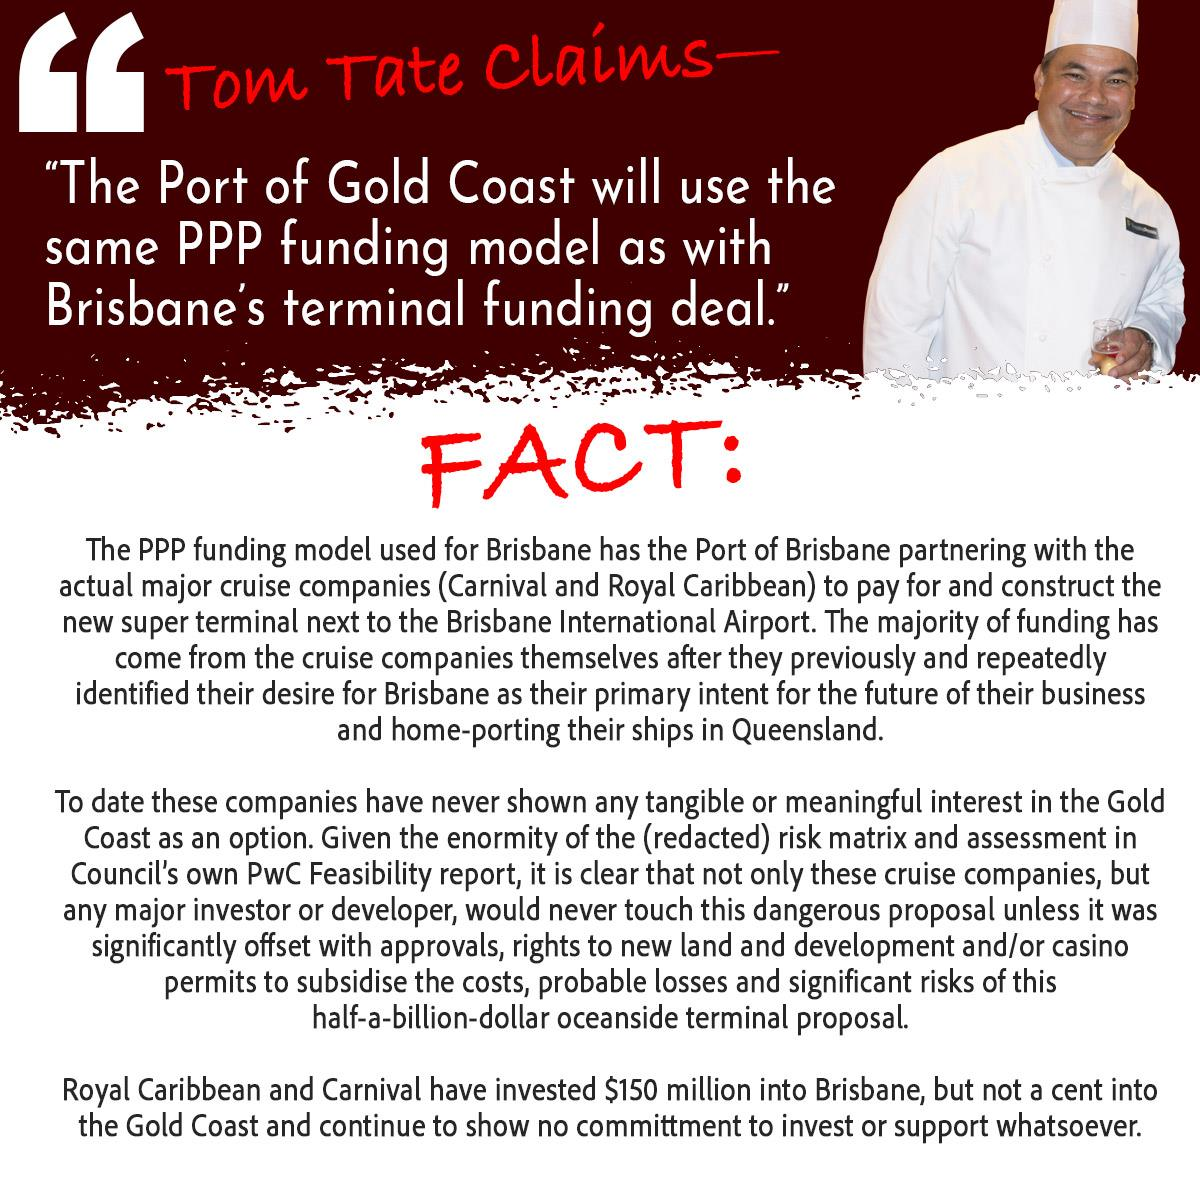 Tom Tate Claims PPP